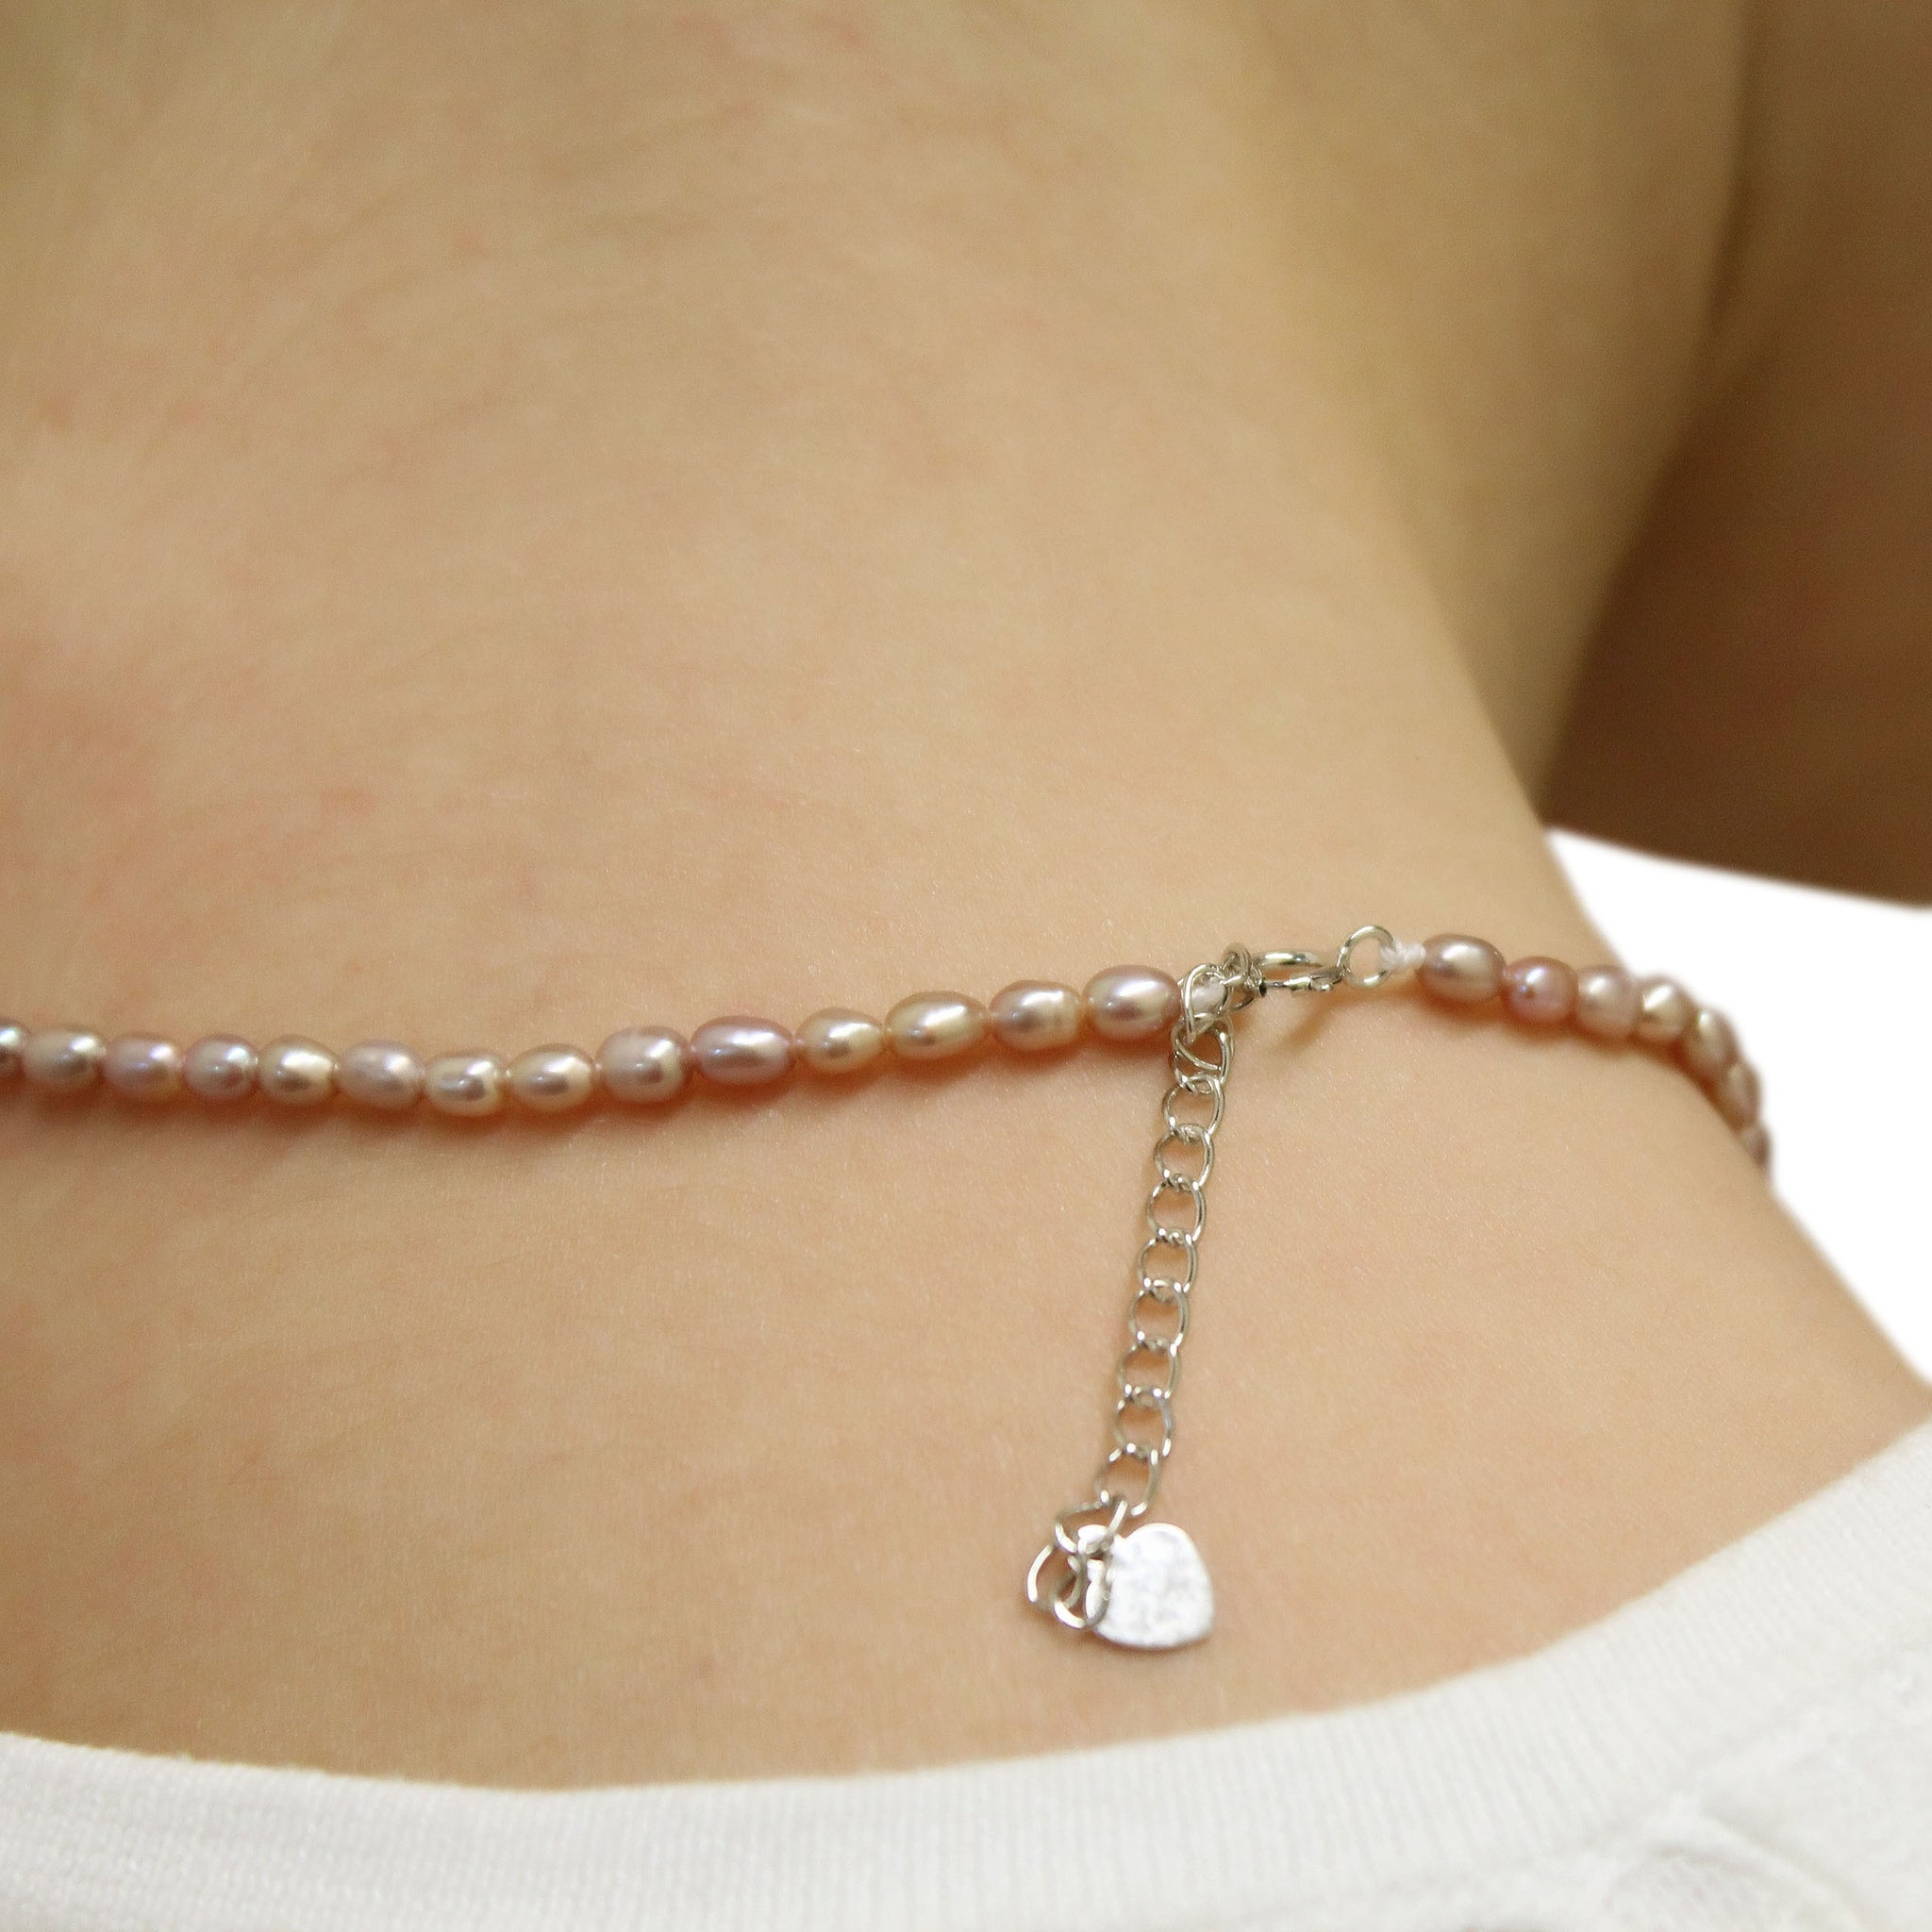 TINY PEARLS - Pearl Necklace for Girls LvhzKL4n